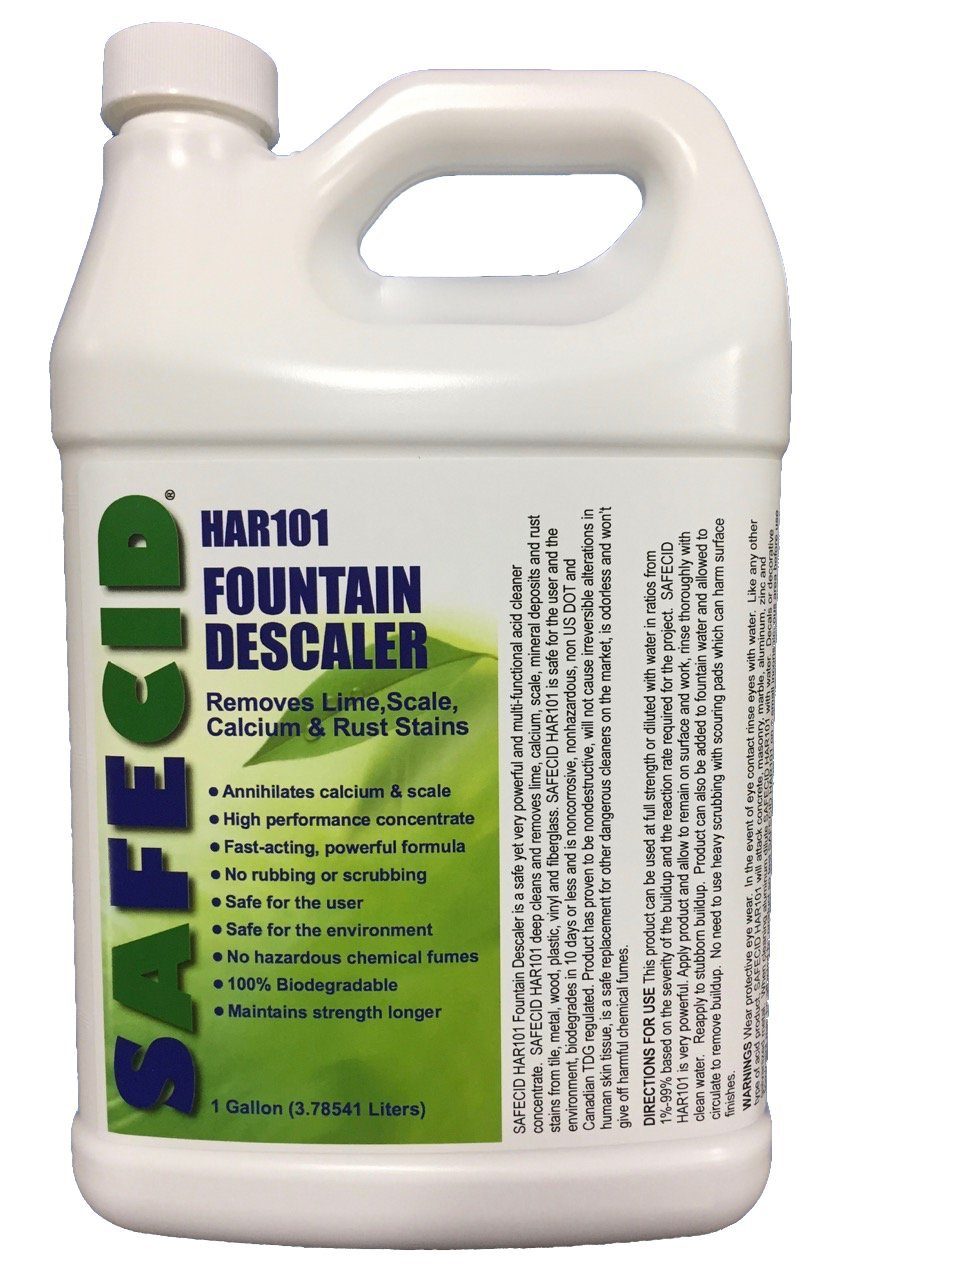 Safe Fountain Calcium Scale Remover & Cleaner F-HAR101 Descaler removes Lime, Calcium, Scale, Mineral deposits, Rust Stains from Fountains (Gallon) by SAFECID